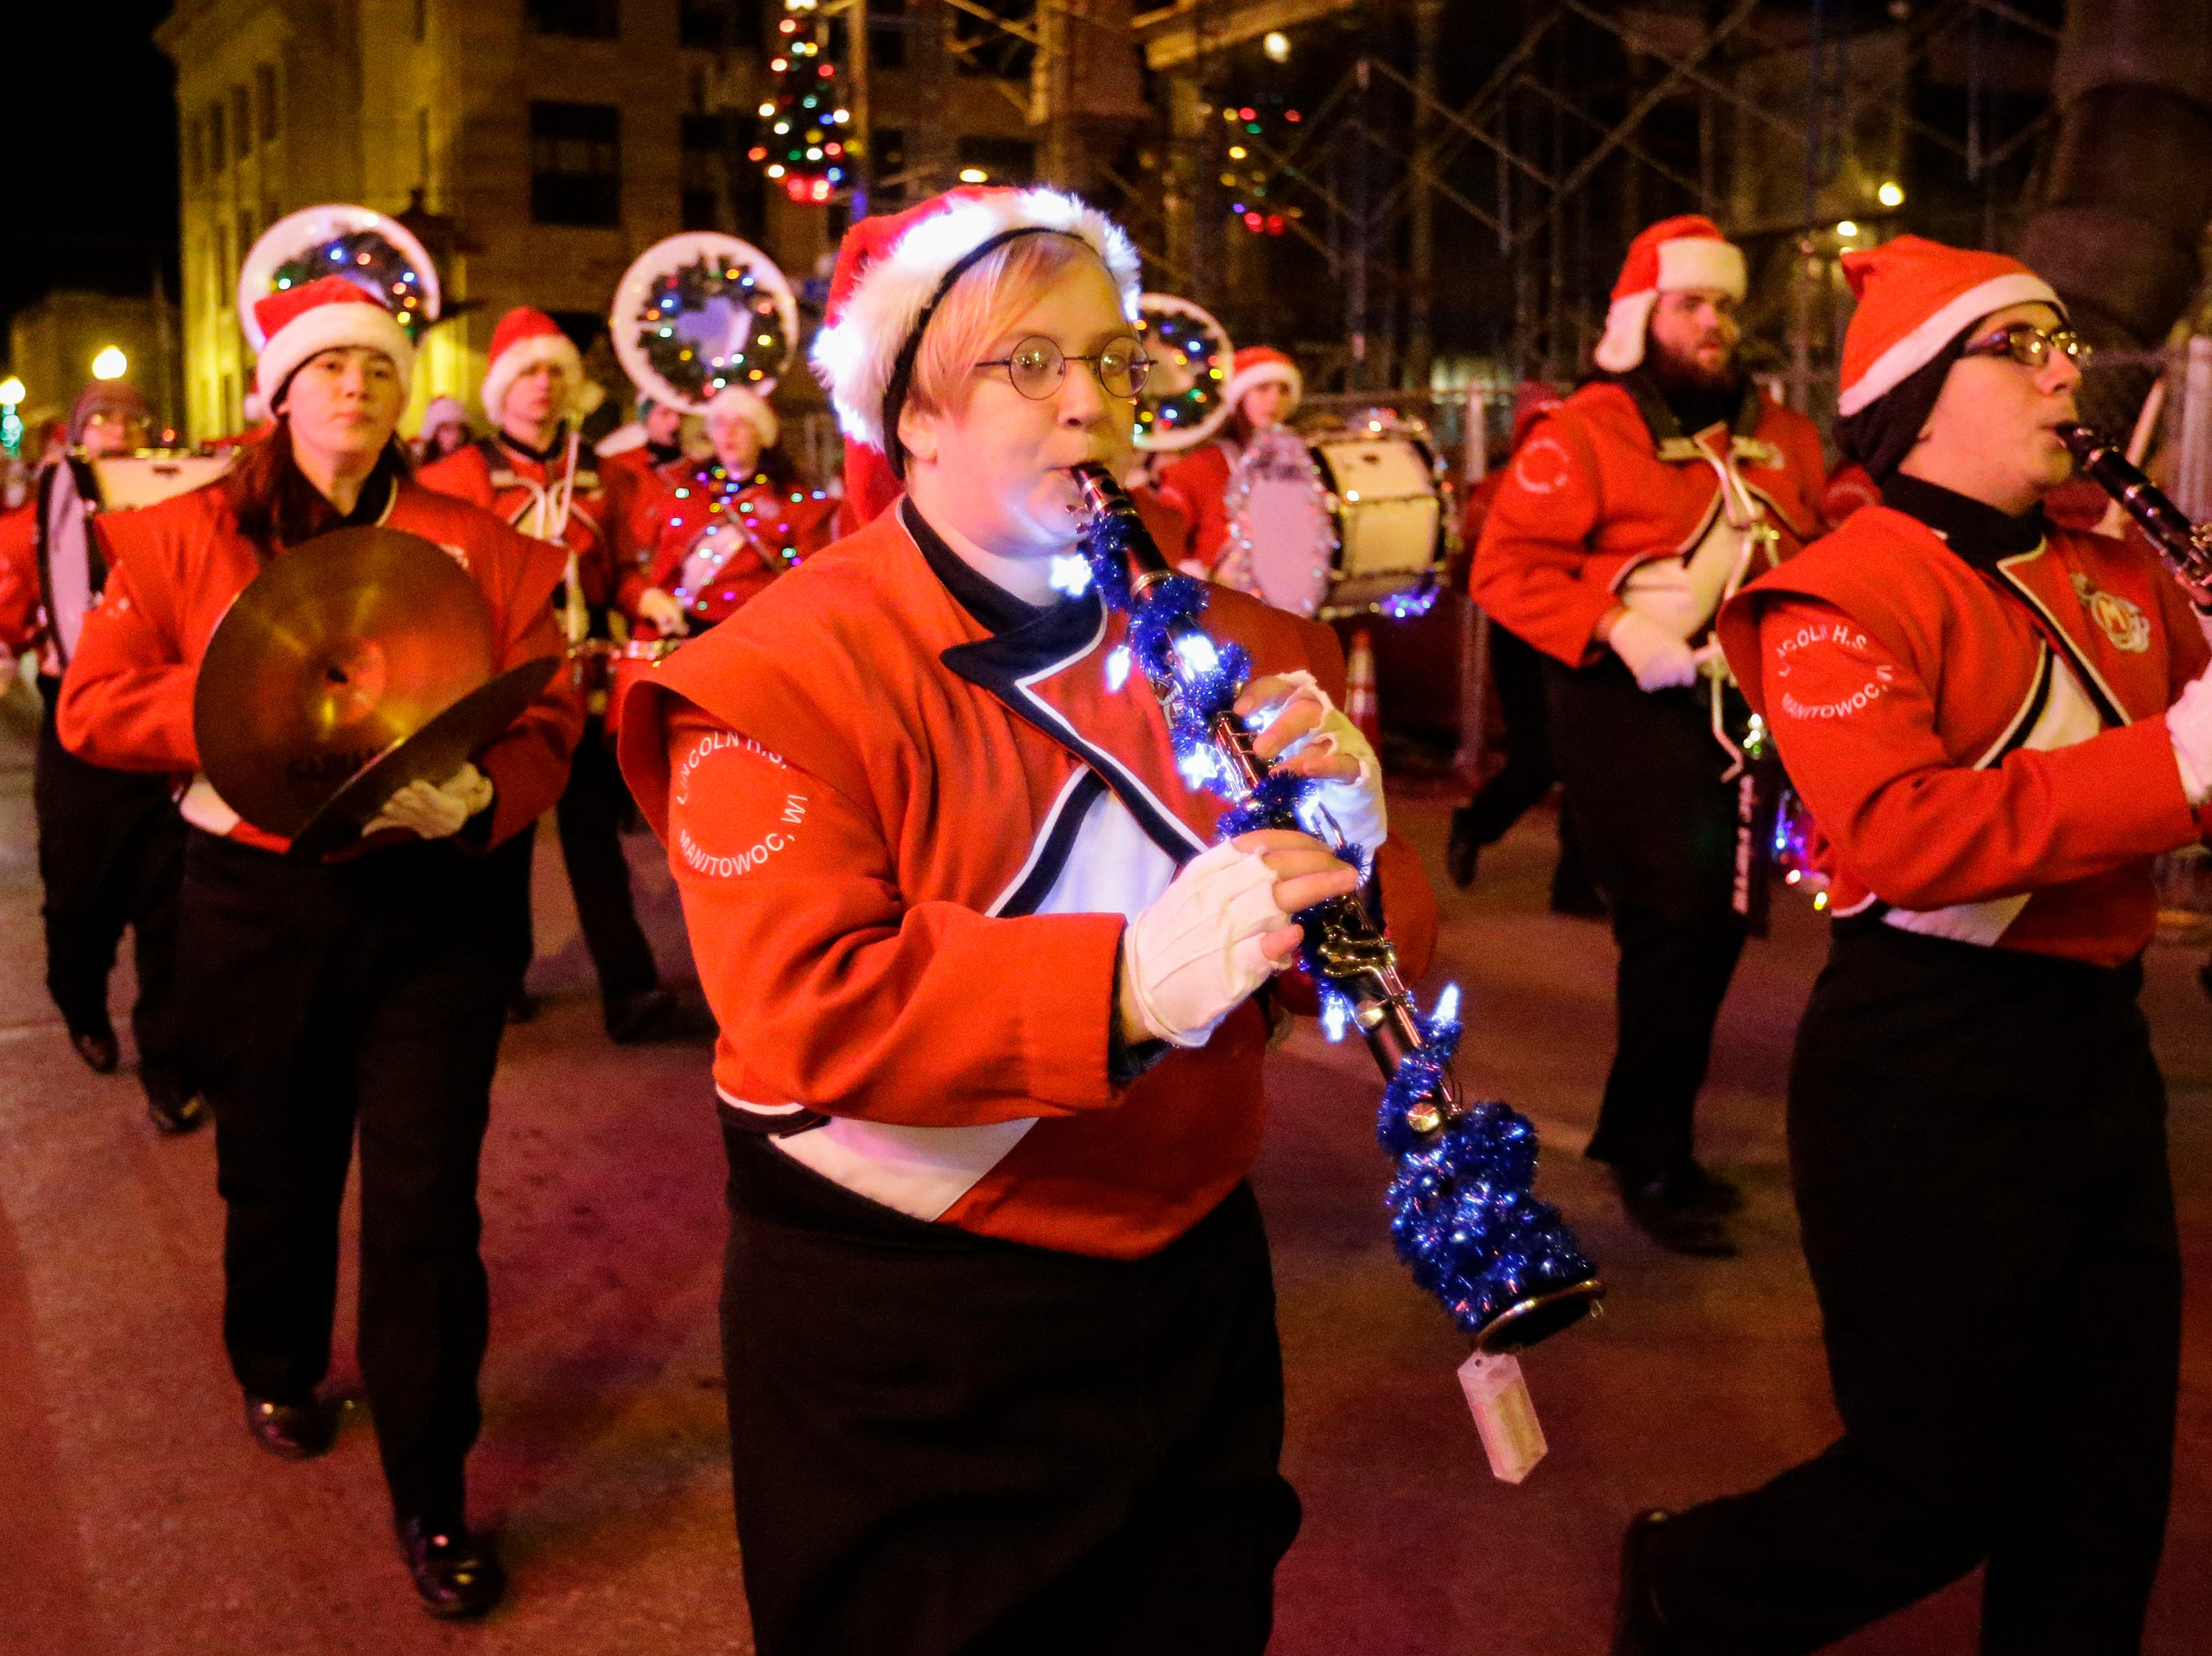 """The Manitowoc Lincoln High School marching band plays during the 30th Annual Lakeshore Holiday Parade Wednesday, November 21, 2018, in Manitowoc, Wis. This year's theme was """"Christmas Through the Decades."""" Joshua Clark/USA TODAY NETWORK-Wisconsin"""